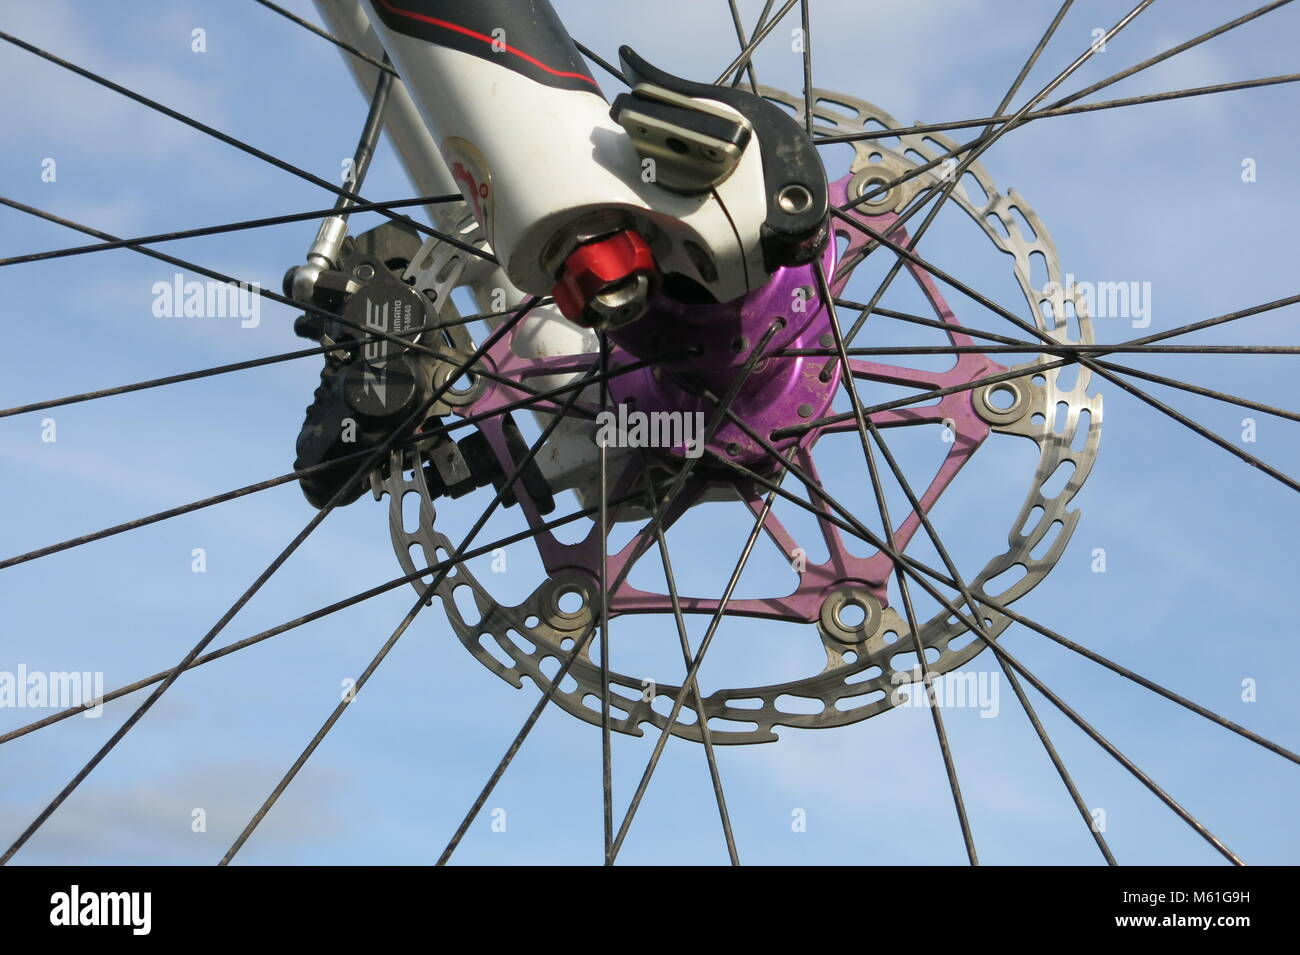 Wire Spokes Stock Photos & Wire Spokes Stock Images - Alamy